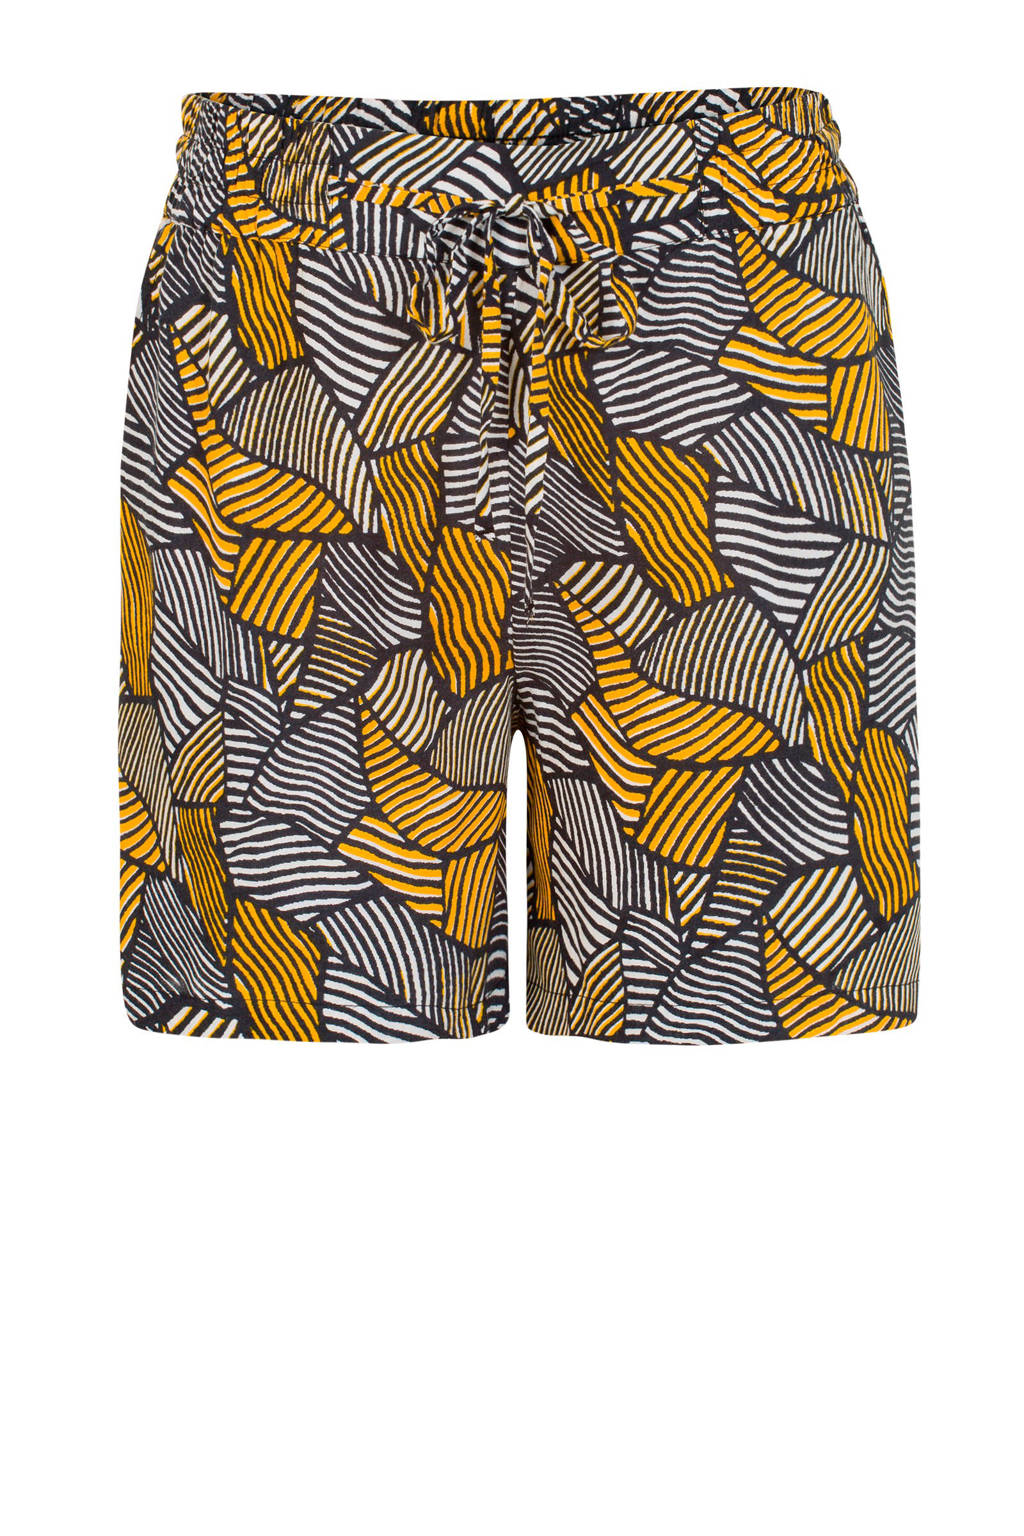 Miss Etam Regulier regular fit short met all over print geel/zwart, Geel/zwart